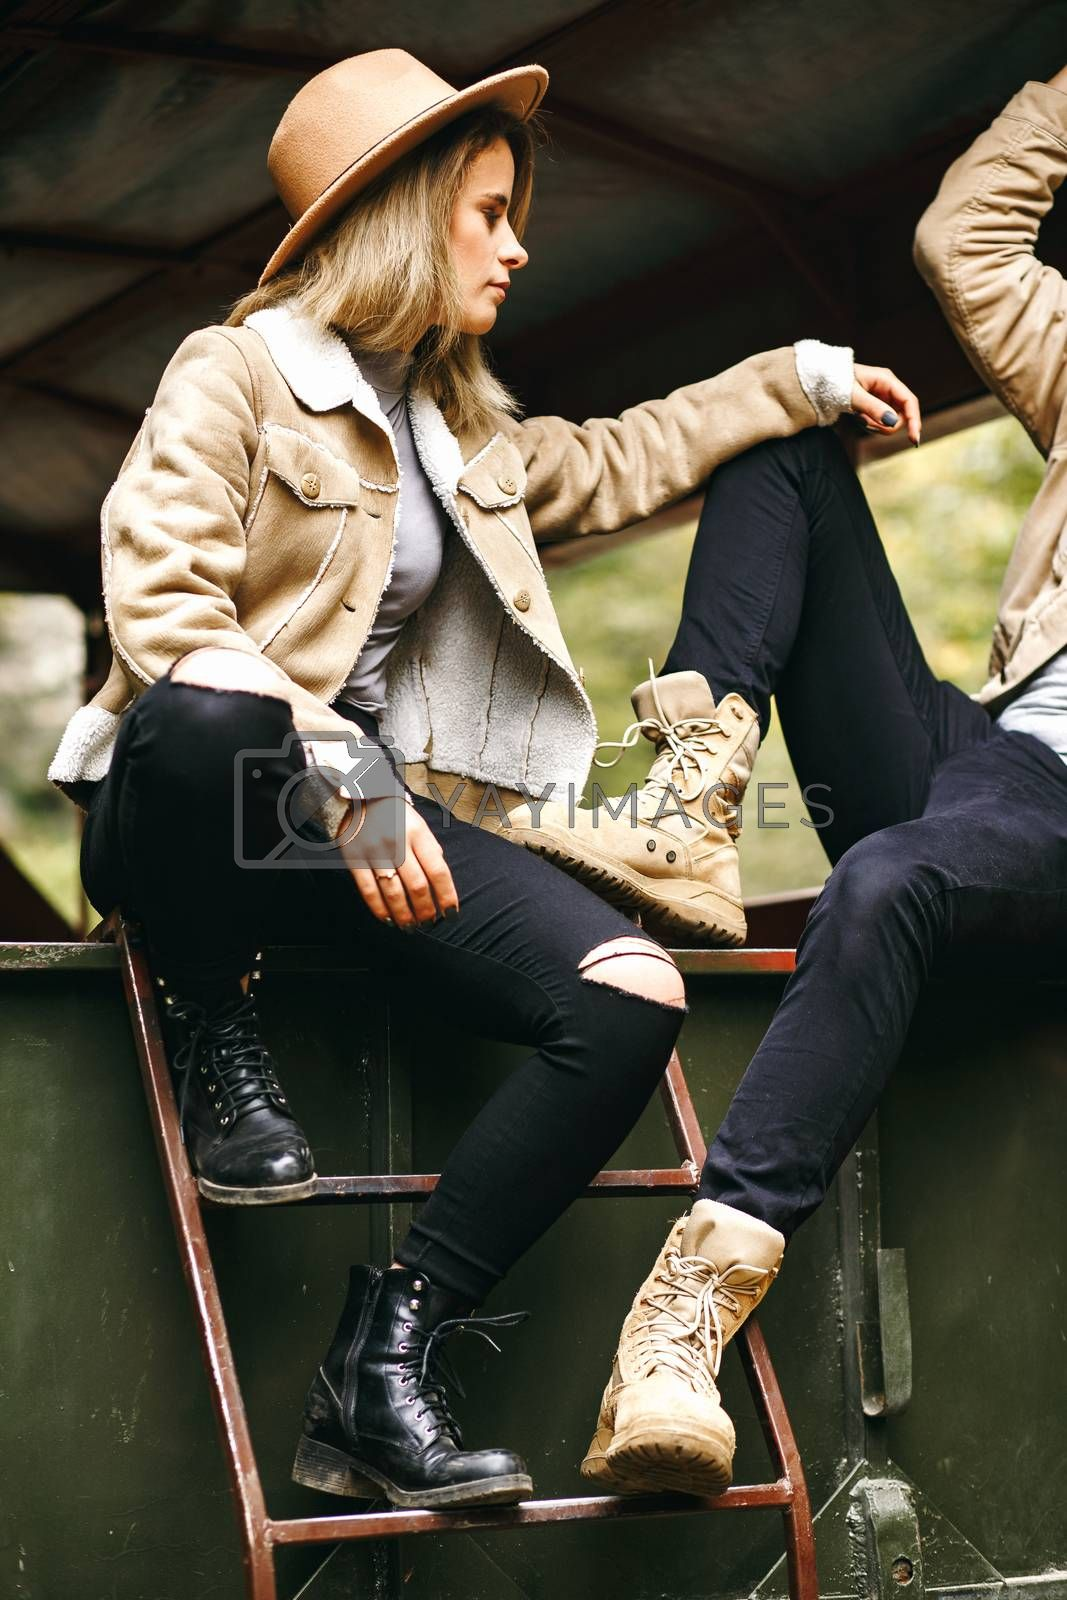 A beautiful girl and a handsome man in military truck. Lovestory. Military vehicle. Military fashion.Carpathian mountains.